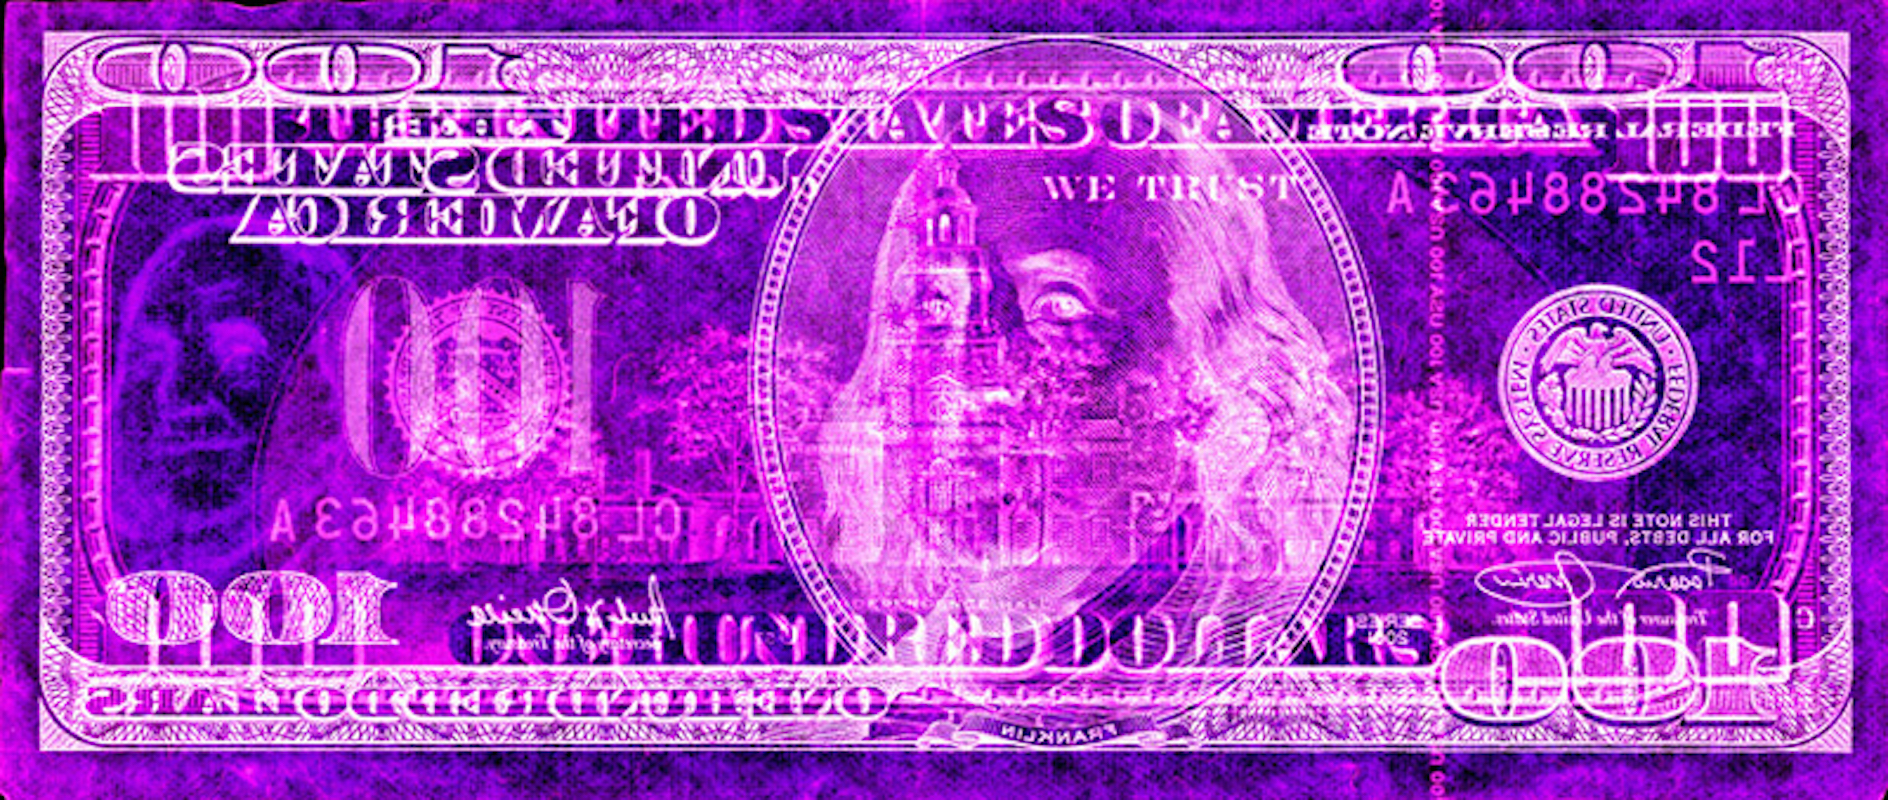 100 Dollars as Negative Currency by David LaChapelle